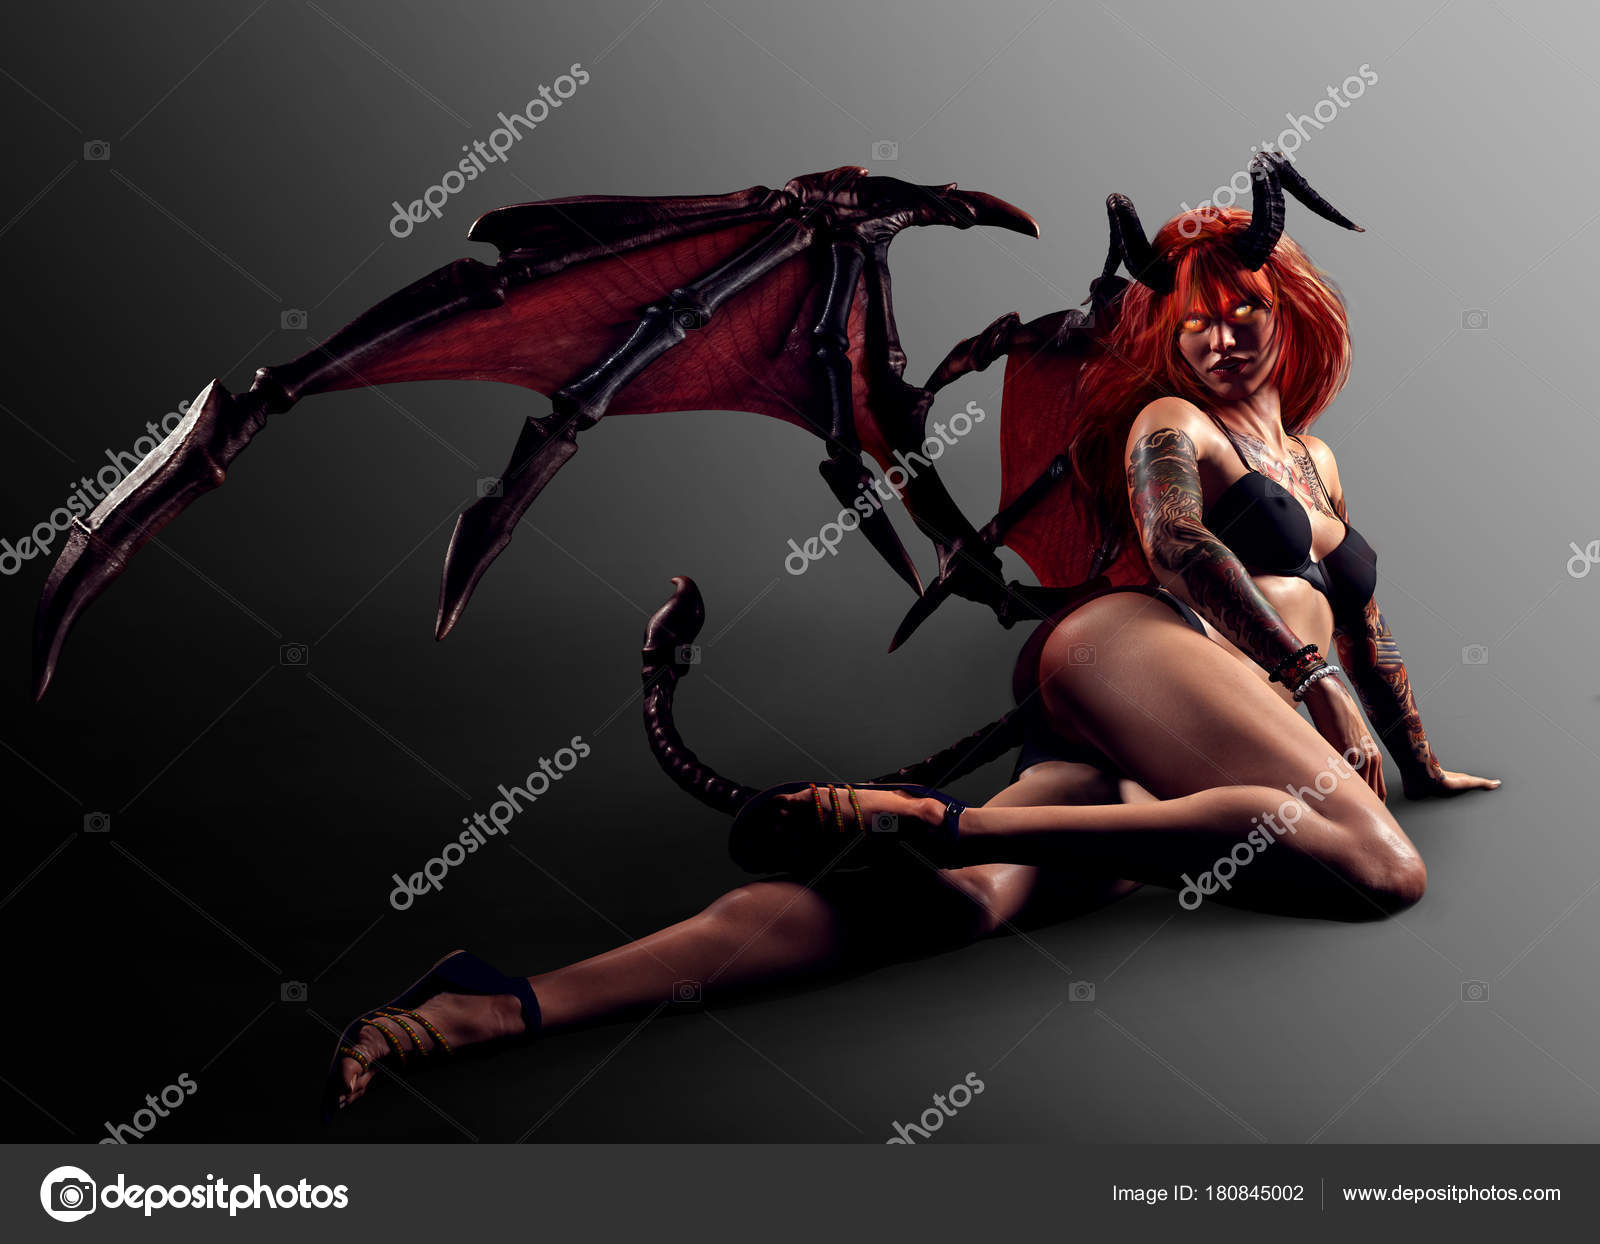 Pictures: demon and names | Sexy Demon Girl Wings Pinup Pose